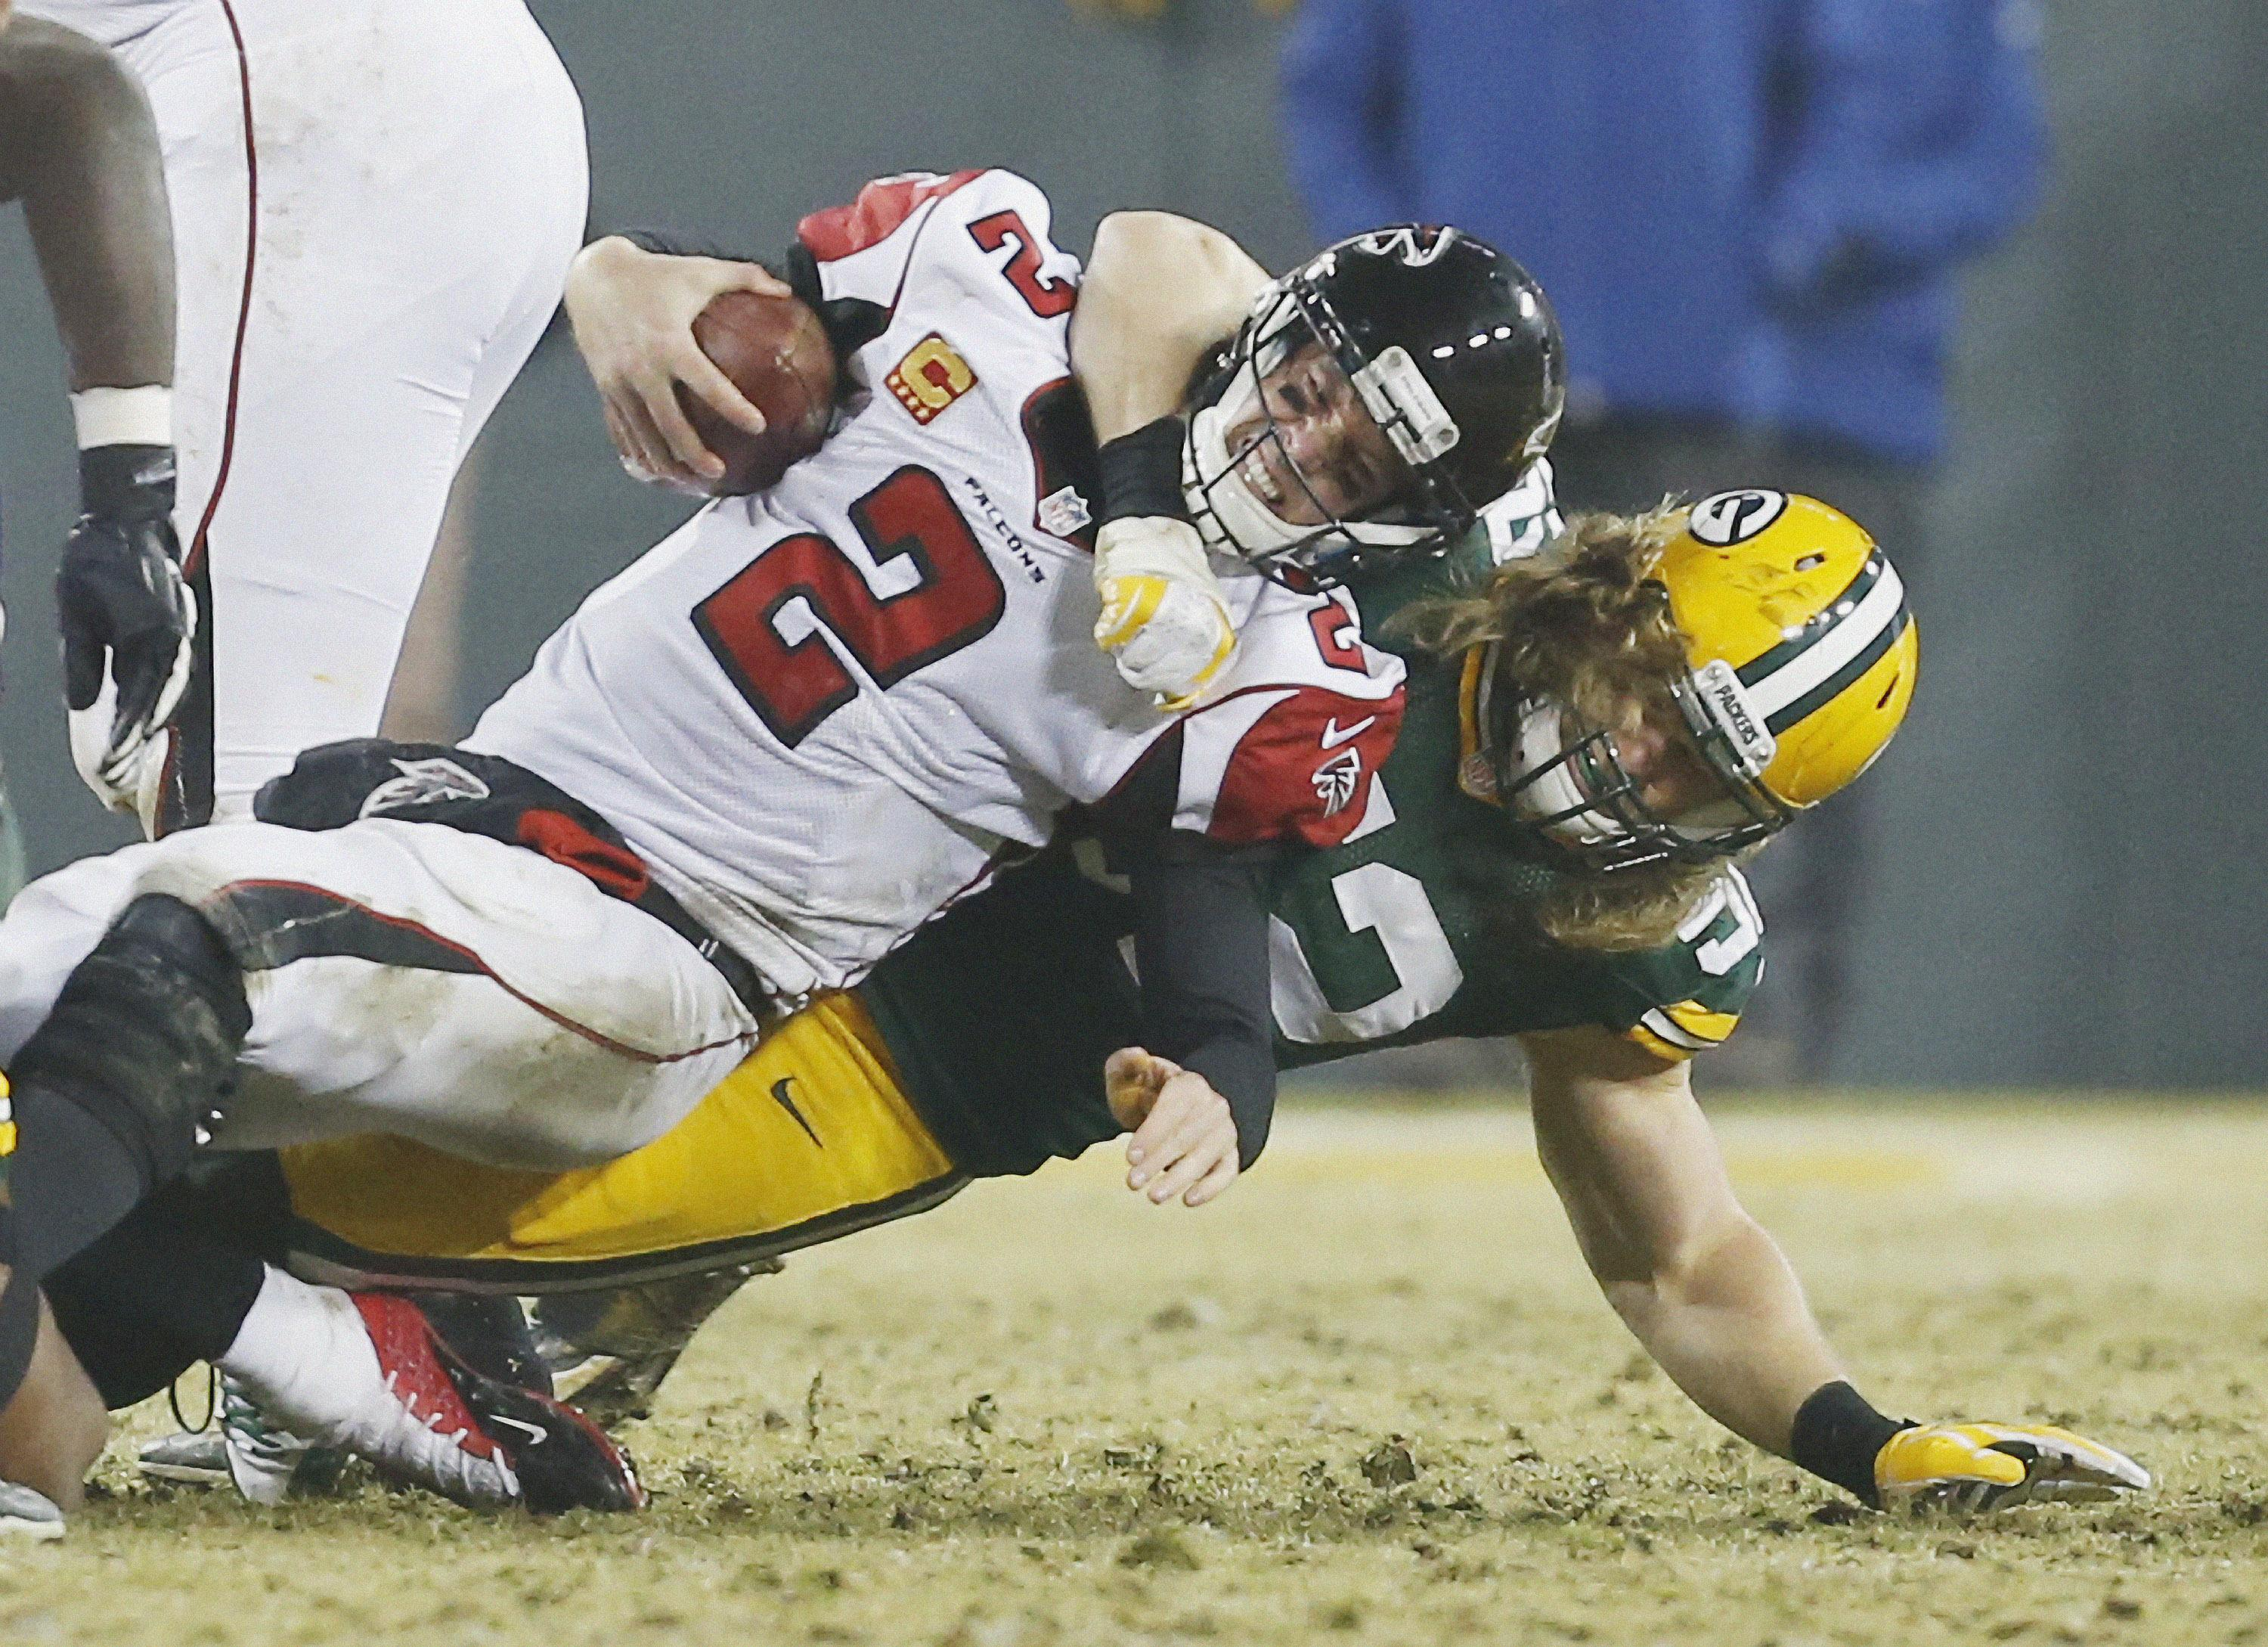 Falcons_packers_stressed_defenses_football_24063